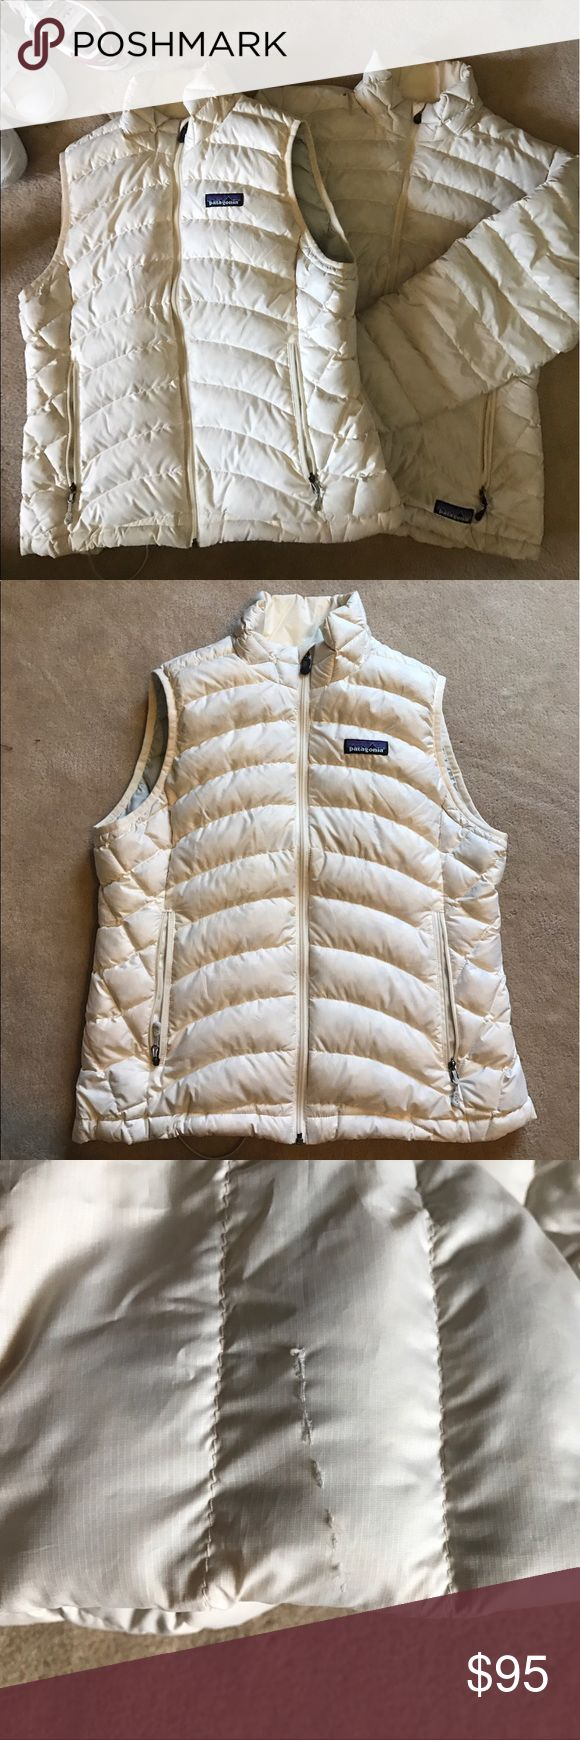 Patagonia vest and jacket bundle Great condition except the jacket does have a small tear in the upper sleeve but not even noticeable and no feathers coming out. Separate listings available but want to sell them together so that's why I'm listing this lower FINAL SALE Patagonia Jackets & Coats Puffers